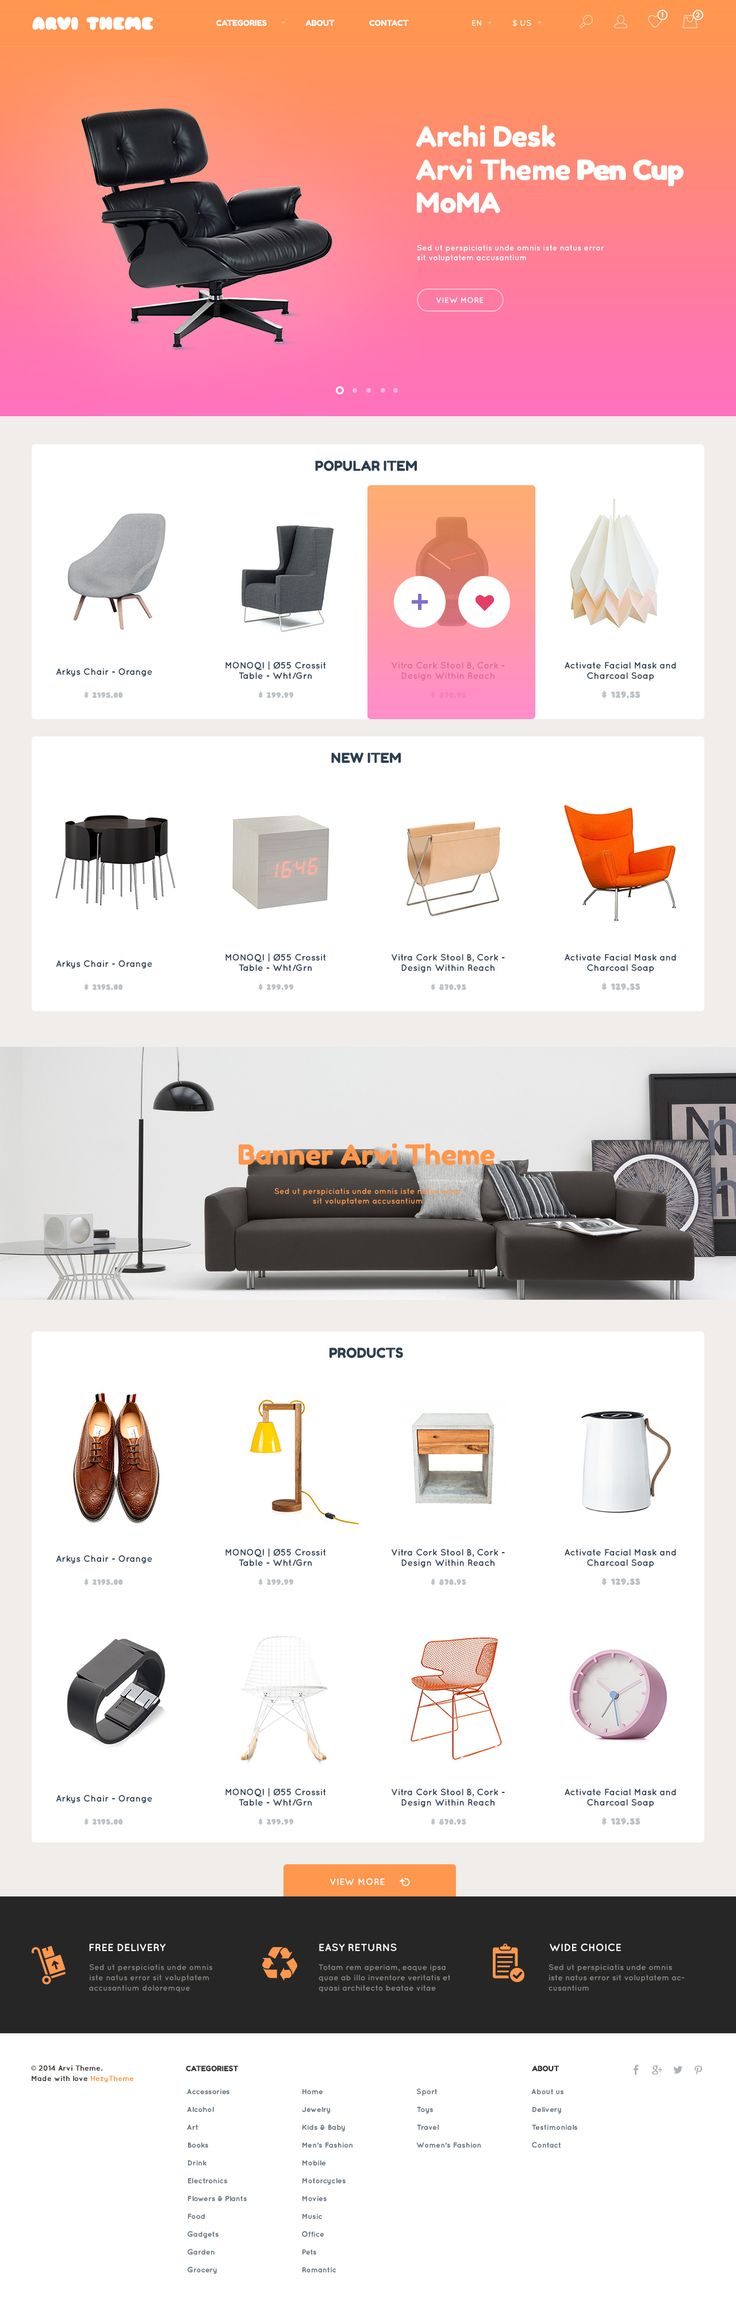 Arvi: Free E-commerce Website Template